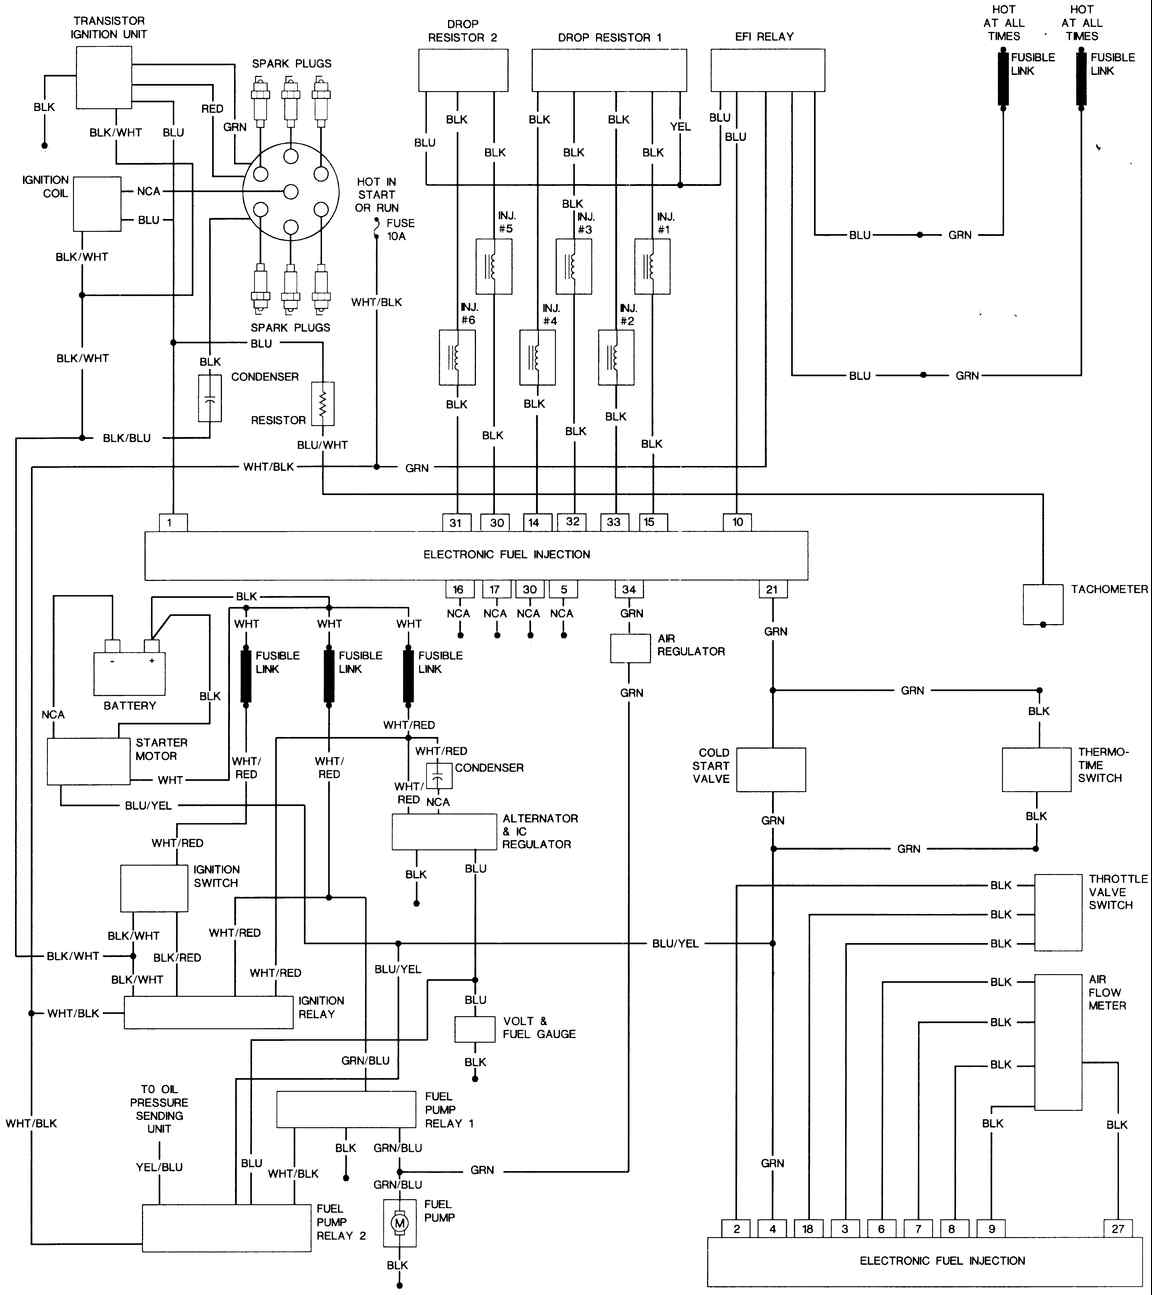 1978 datsun wiring diagram 1973 datsun wiring diagram